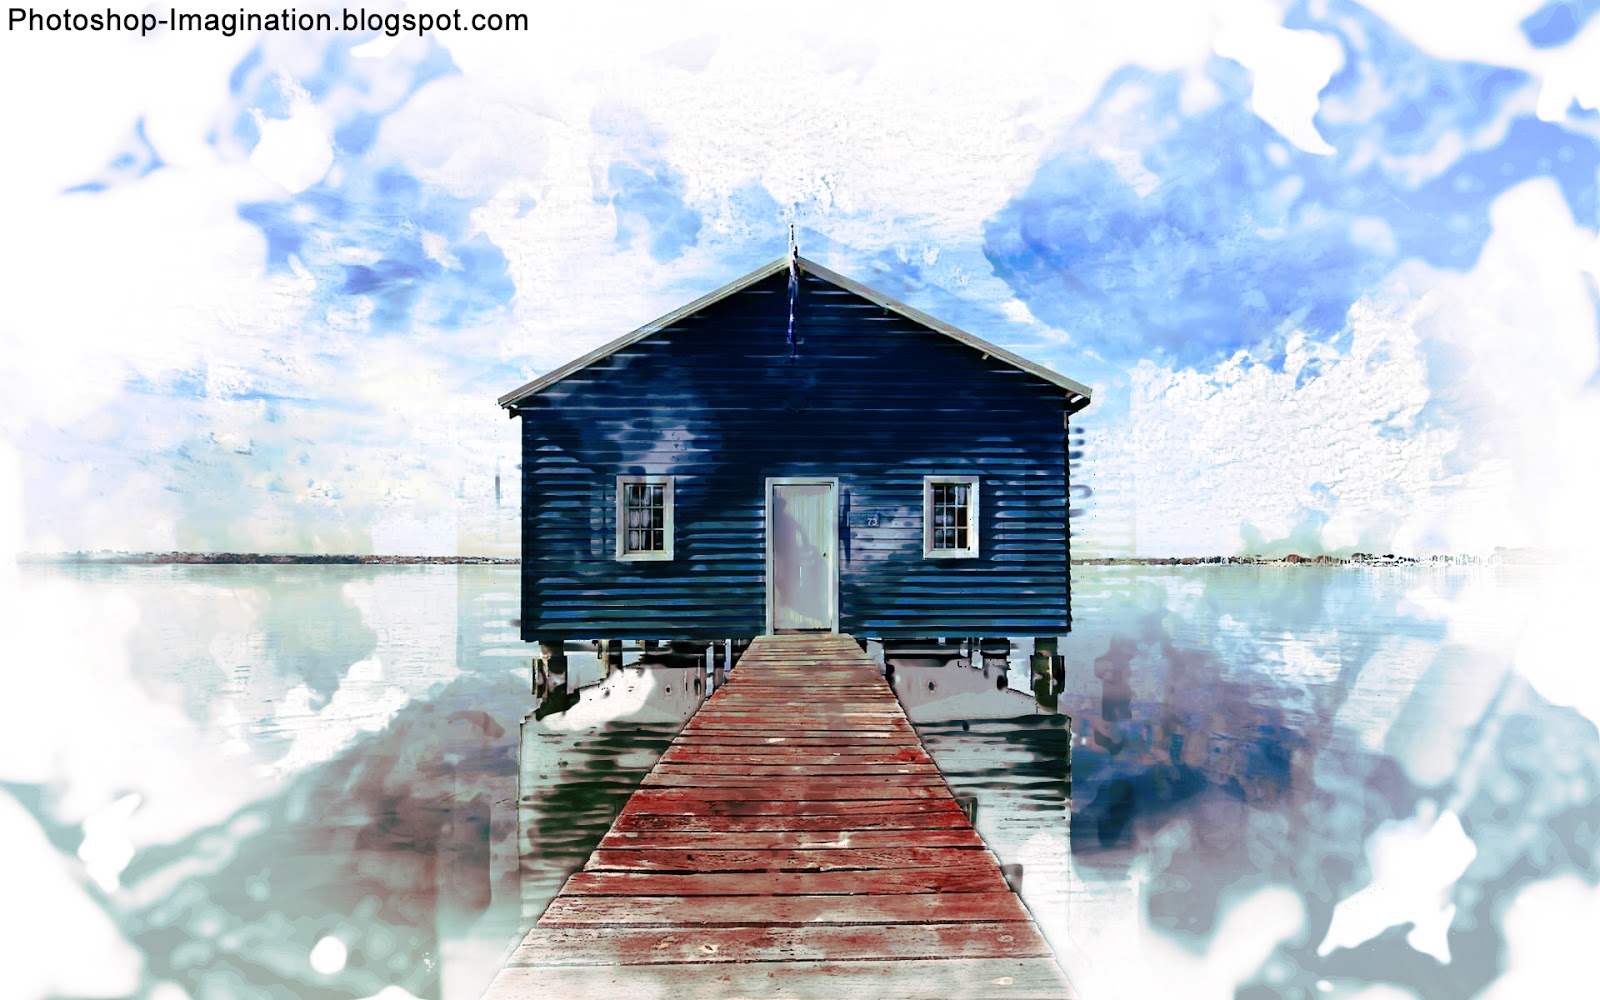 Watercolour photoshop action free download photoshop for Watercolor painting templates free